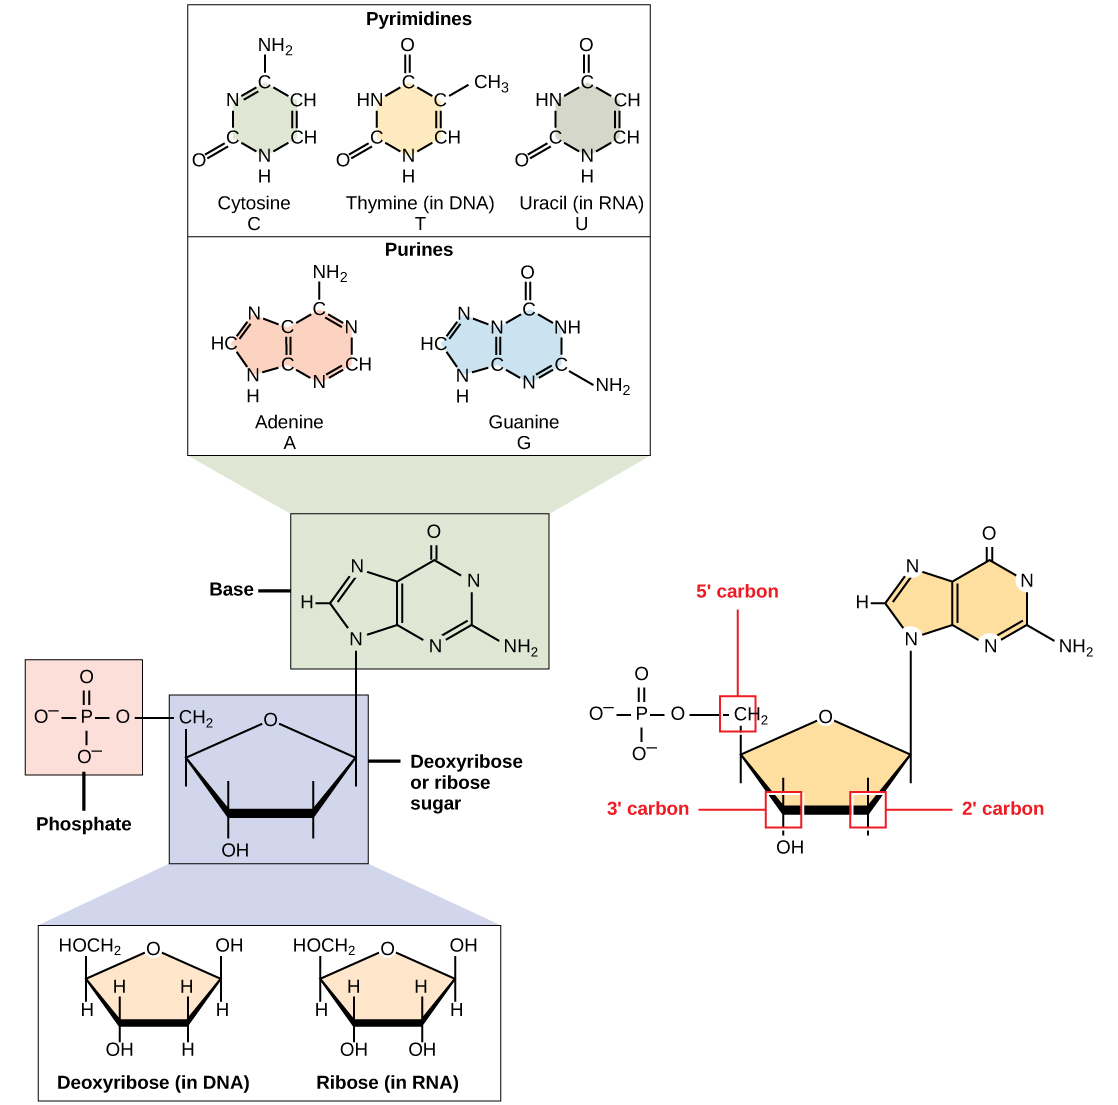 The molecular structure of a nucleotide is shown. The core of the nucleotide is a pentose whose carbon residues are numbered one prime through five prime. The base is attached to the one prime carbon, and the phosphate is attached to the five prime carbon. Two kinds of pentose are found in nucleotides: ribose and deoxyribose. Deoxyribose has an H instead of O H at the two prime position. Five kinds of base are found in nucleotides. Two of these, adenine and guanine, are purine bases with two rings fused together. The other three, cytosine, thymine and uracil, have one six-membered ring.